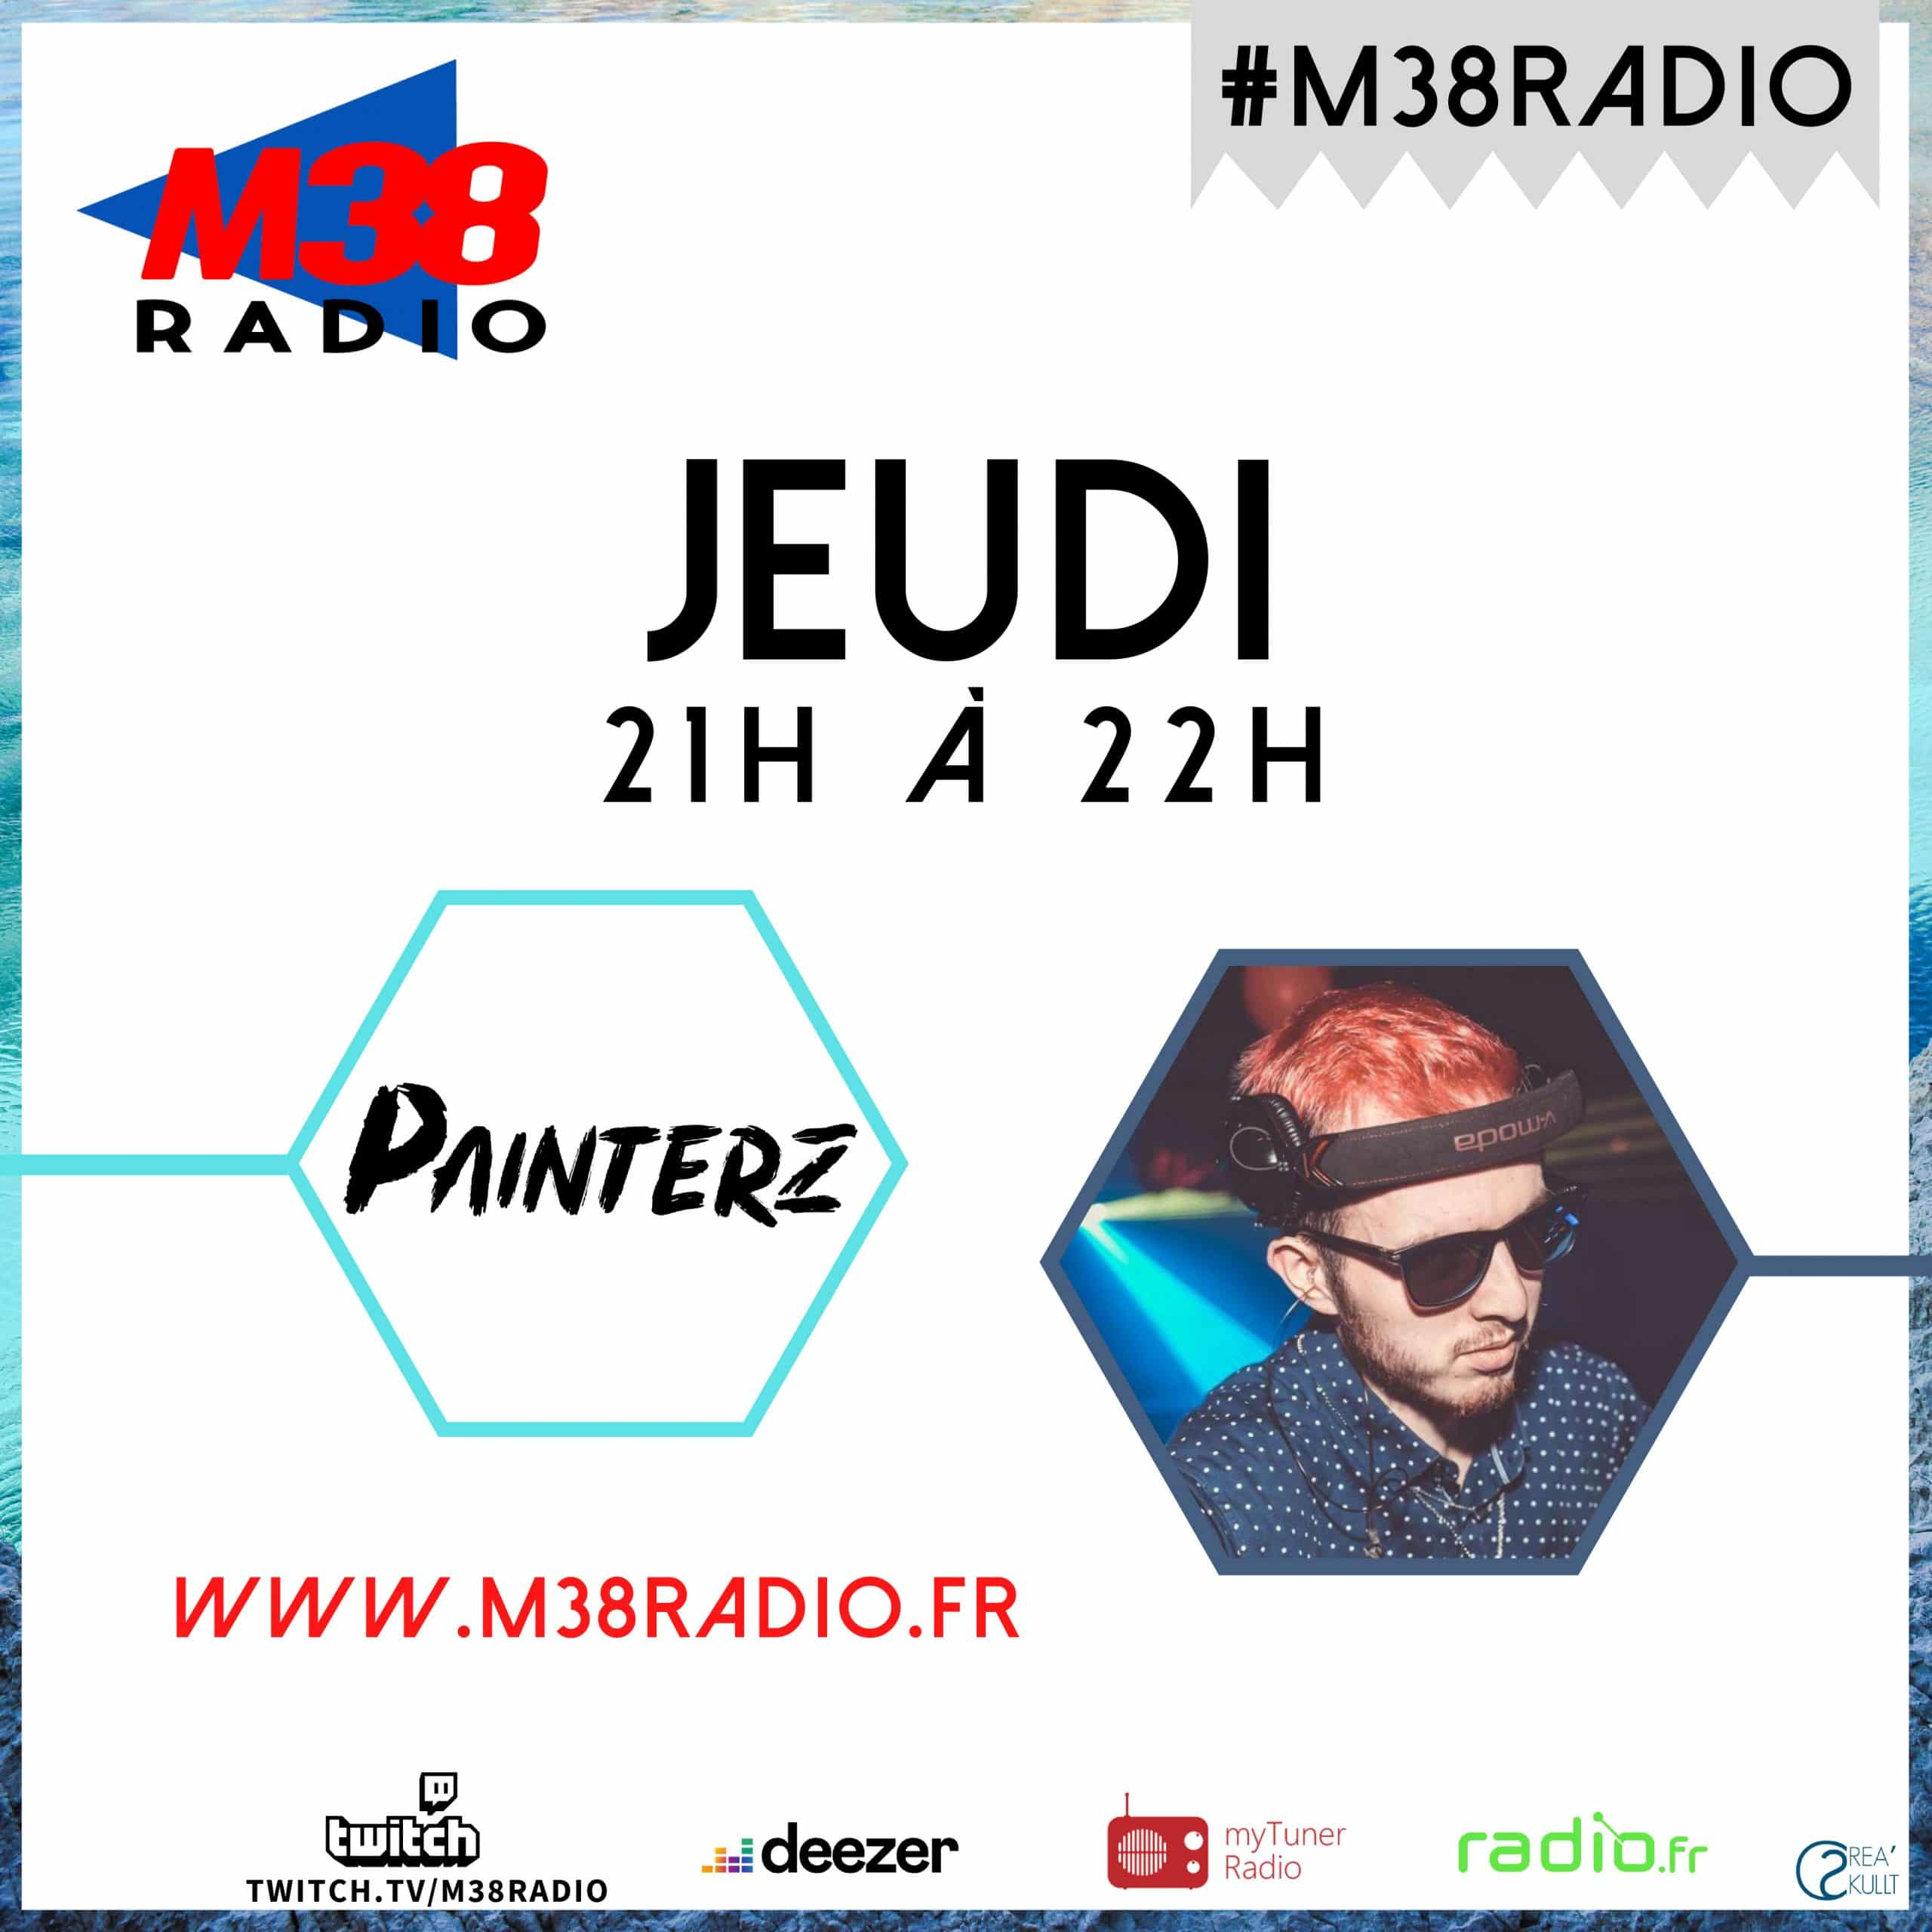 painterz sur m38 radio